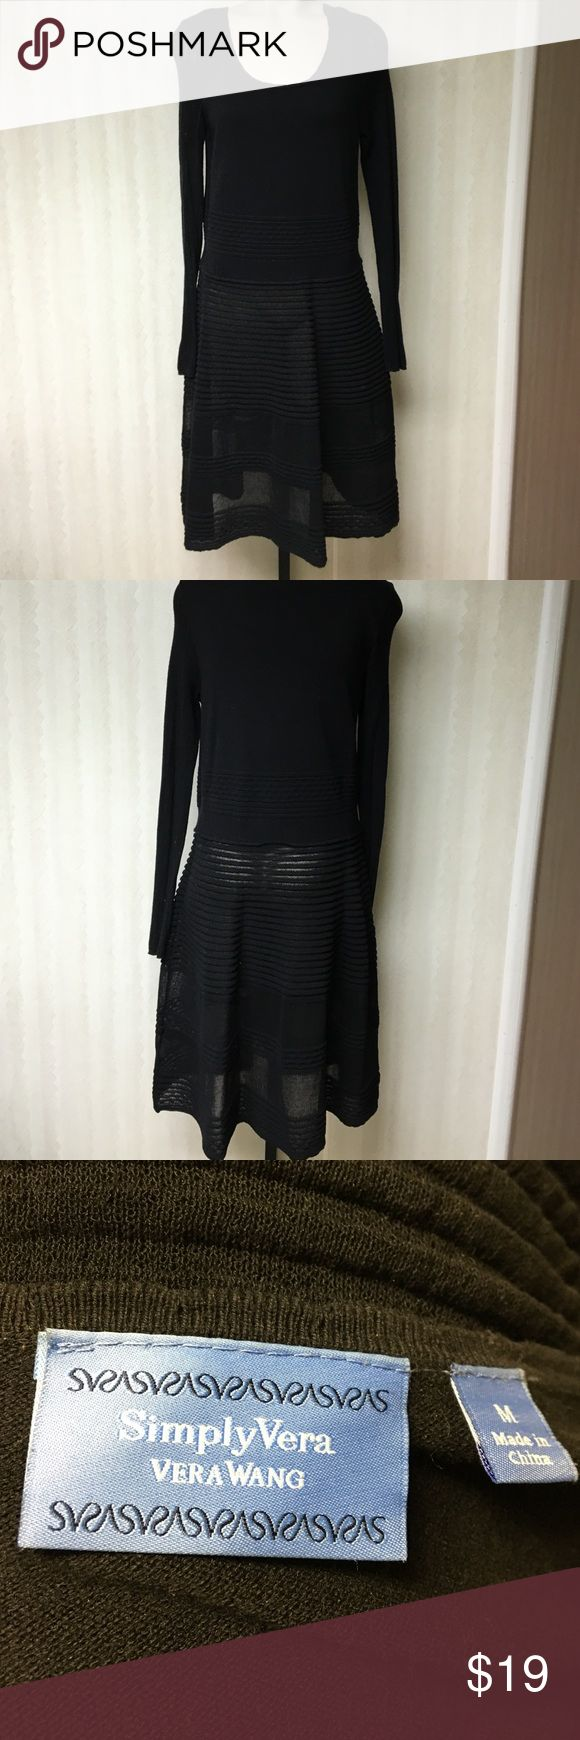 Simply Vera dress Simply Vera black dress with sheer detail. Size M. Worn once. Great with tights and boots!! Simply Vera Vera Wang Dresses